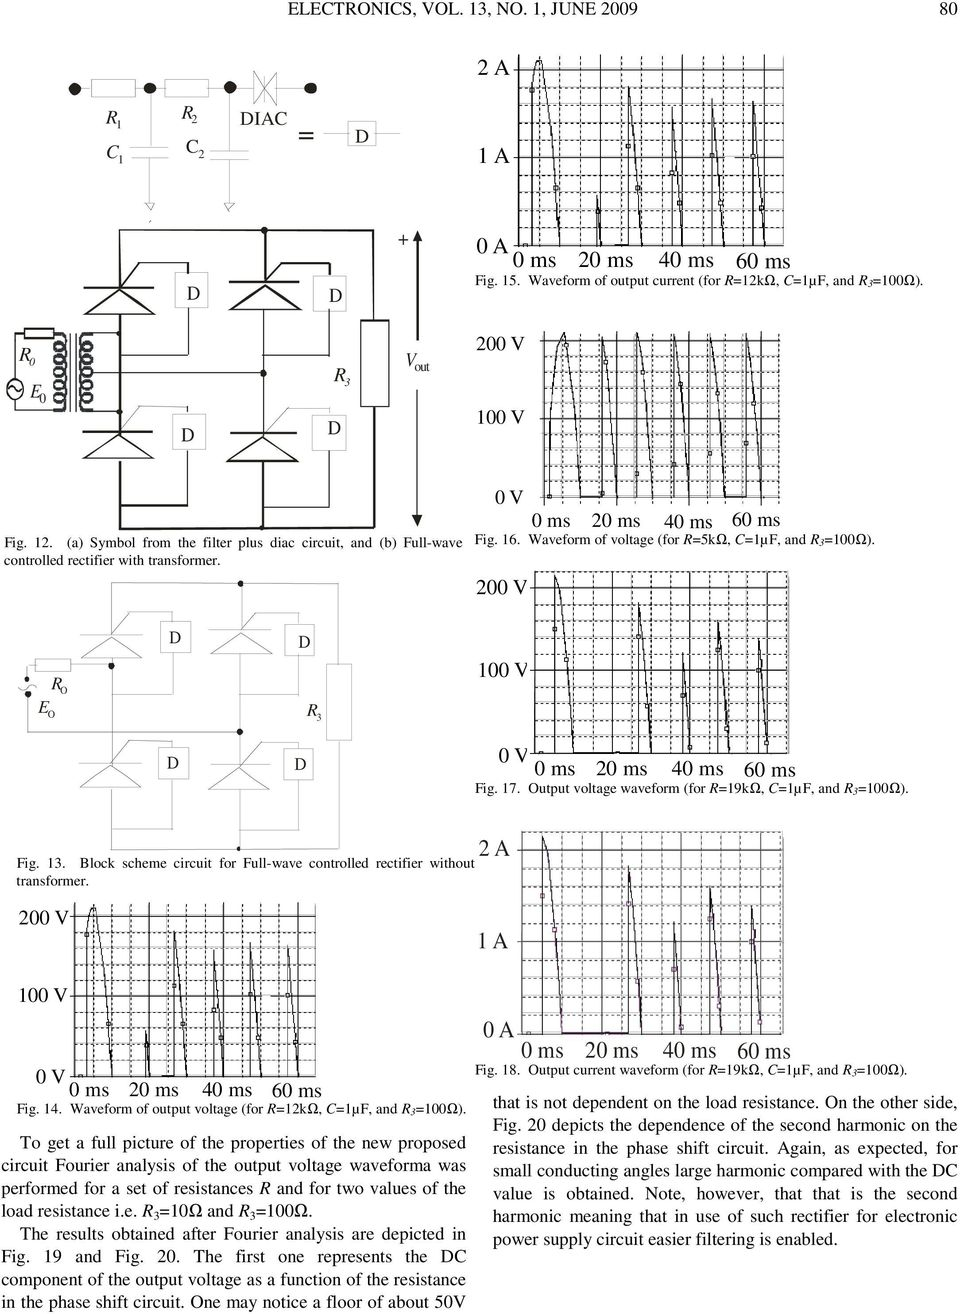 A Thyristor Full Wave Rectifier With Control Of The Conducting Shows Voltages And Current In Simple Half Circuit Block Scheme For Ull Controlled Without Transformer 1